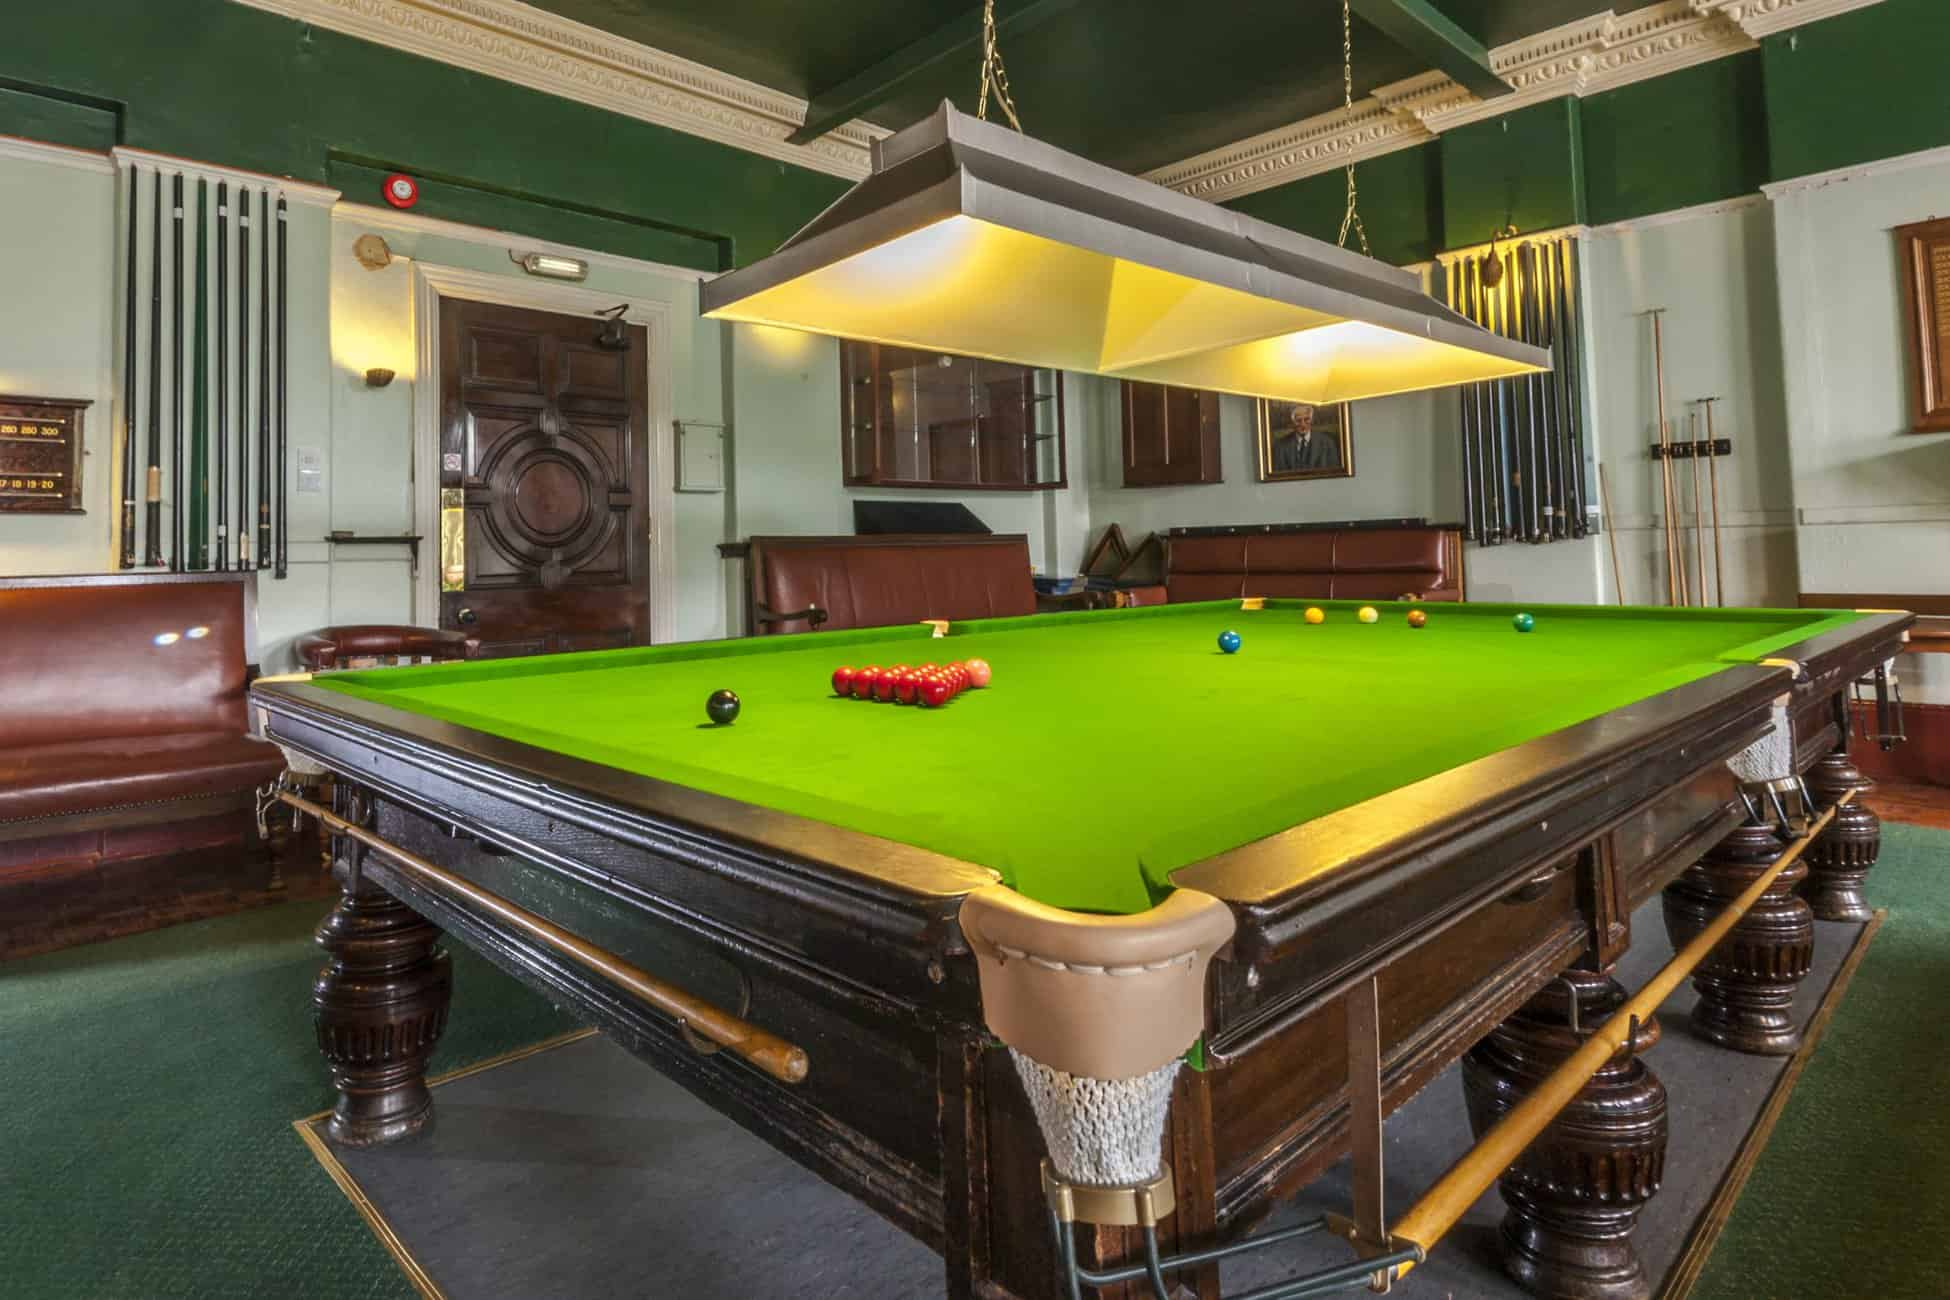 The snooker room at Formby Golf Club